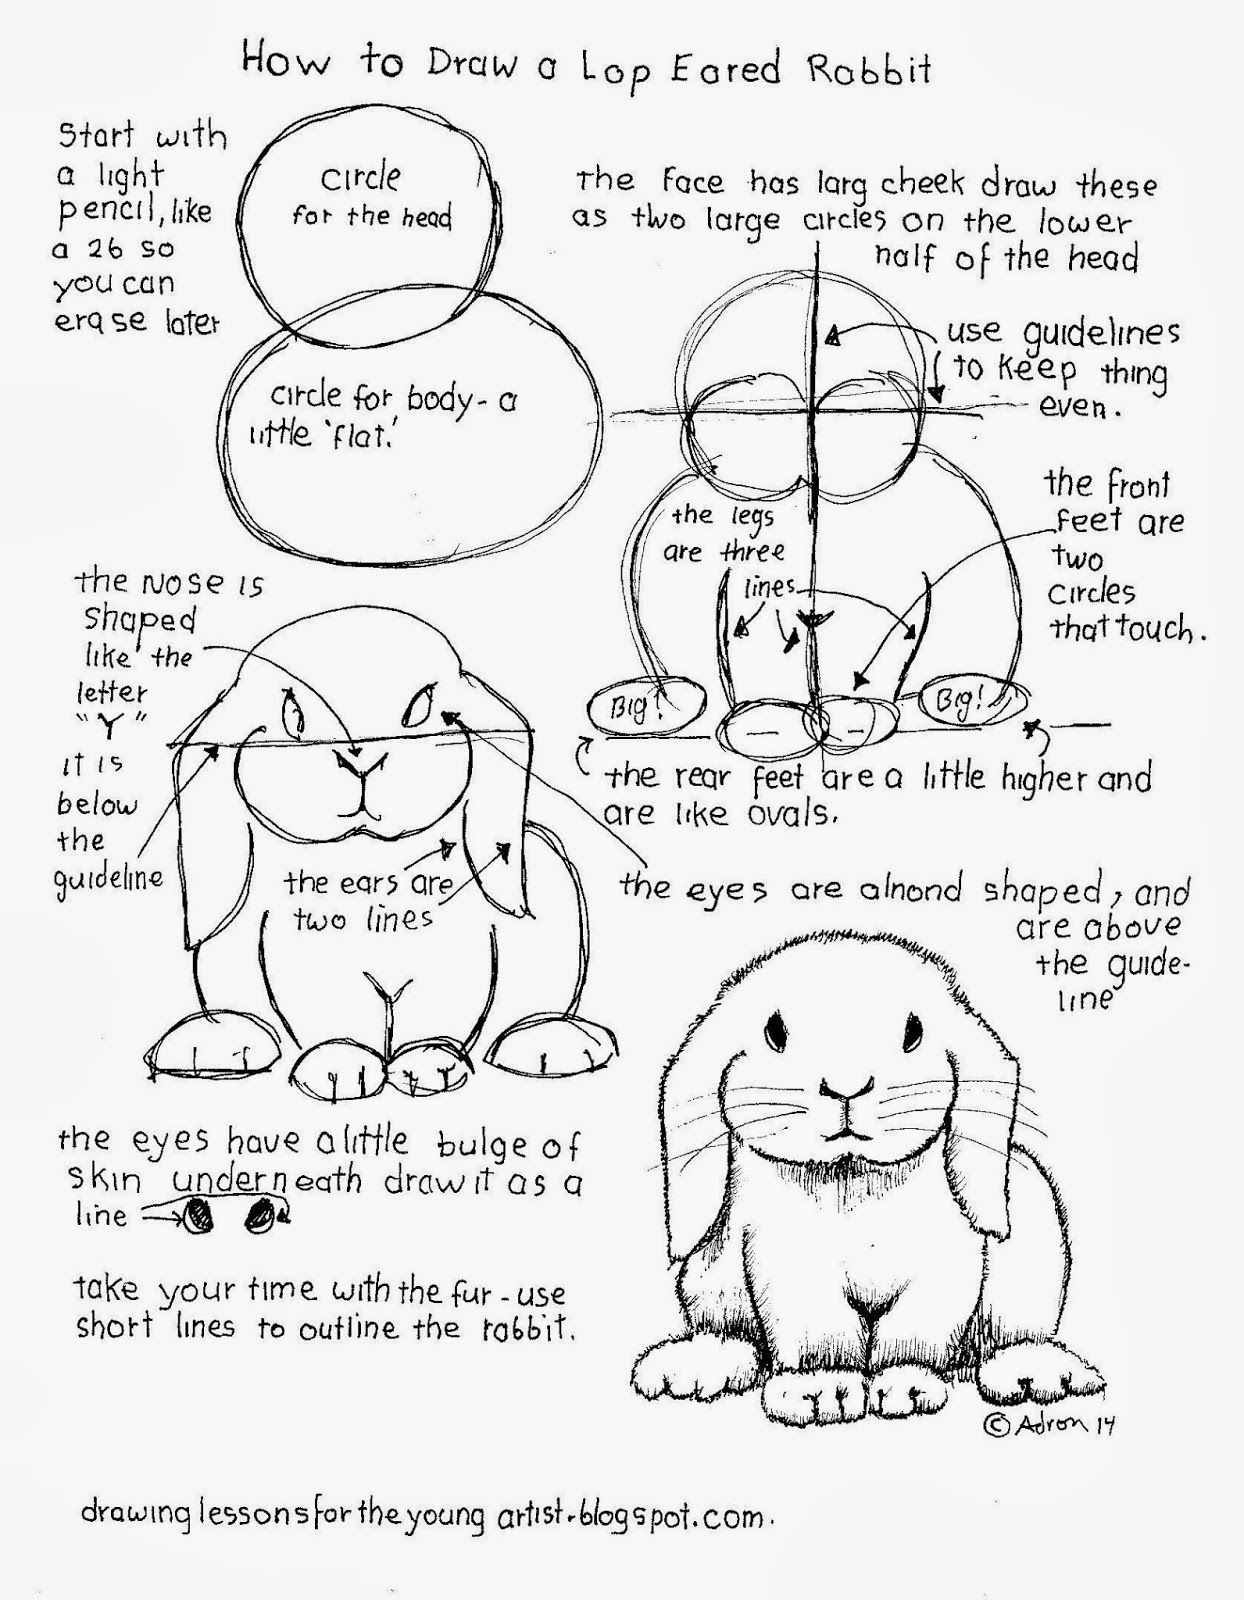 How To Draw A Lop Eared Rabbit Free Worksheet How To Draw